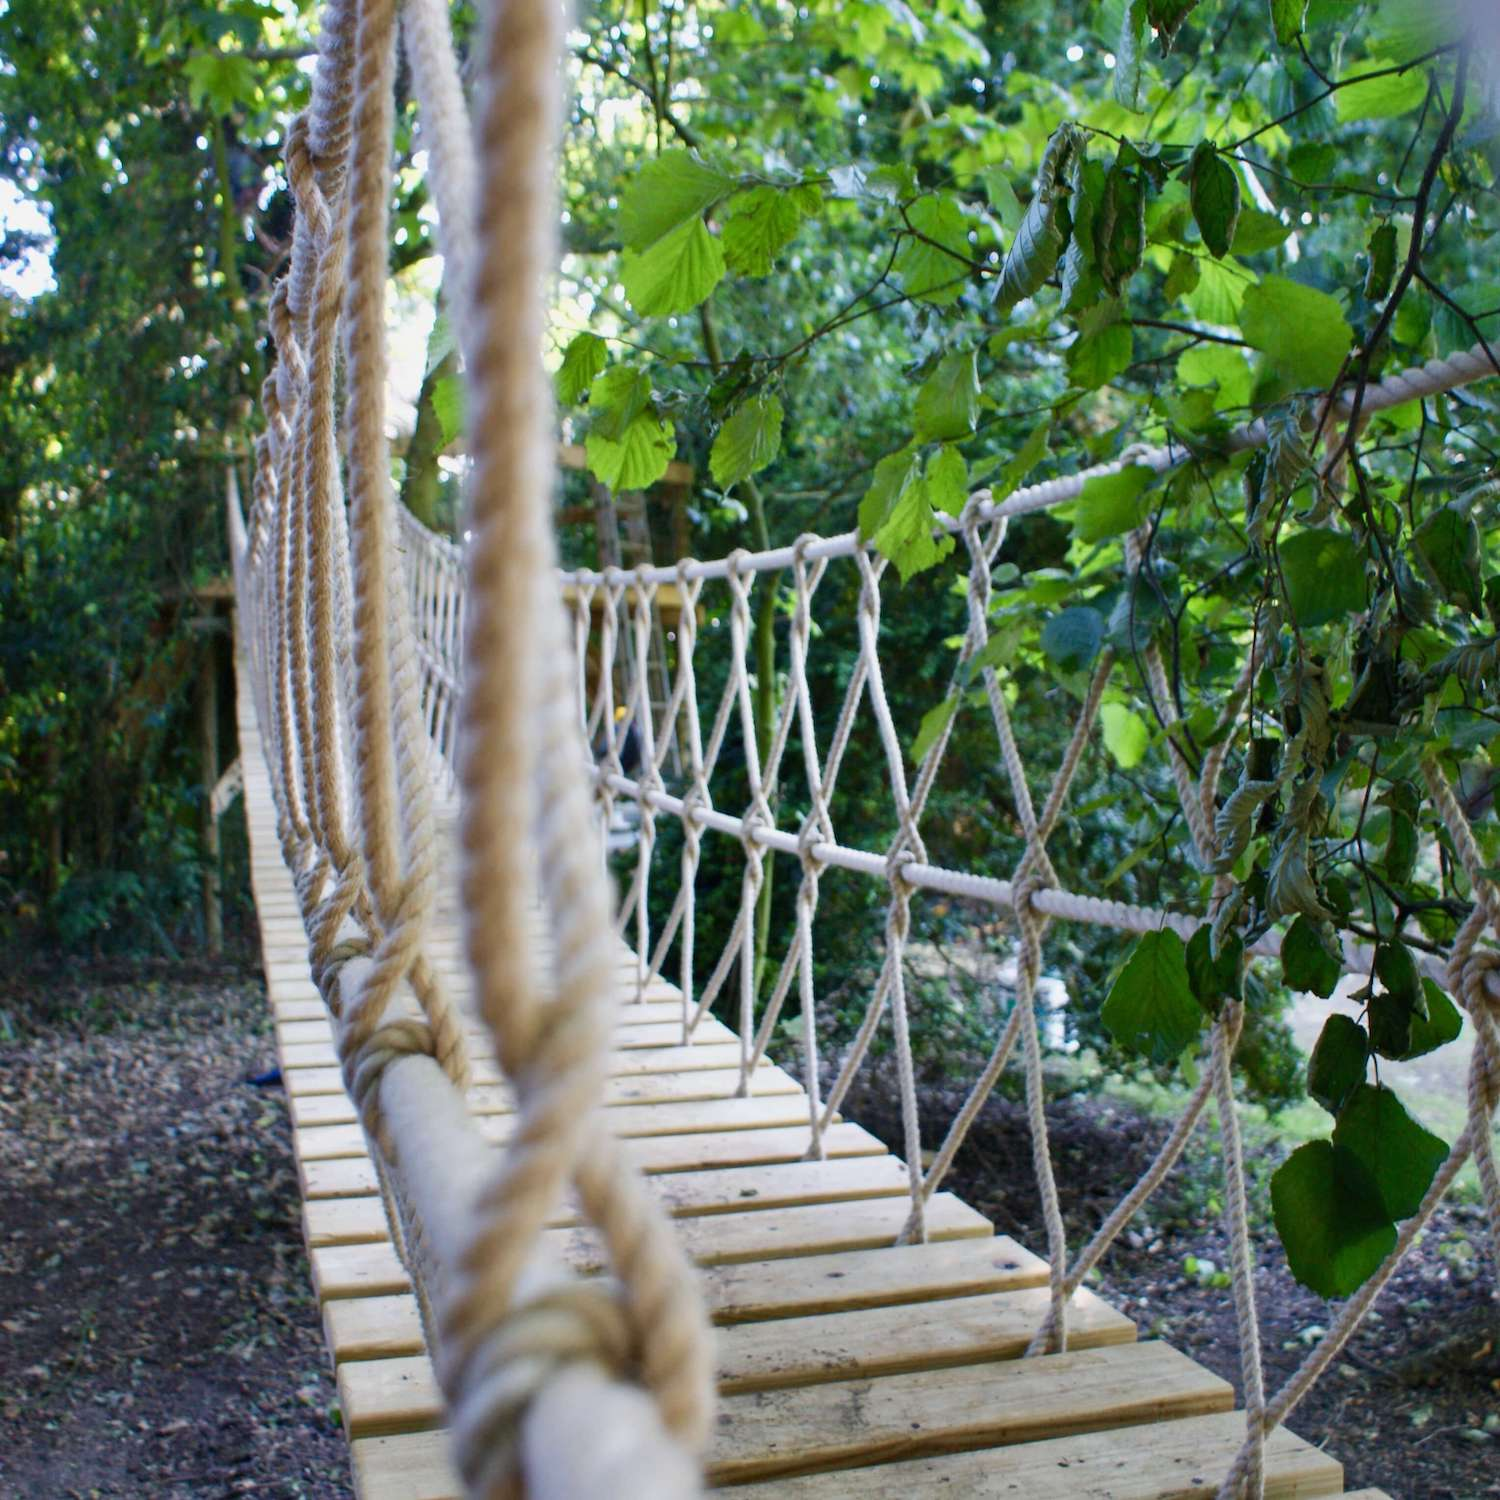 Rope-Bridge-and-rope-work-by-Treehouse-Life-Ltd.jpg